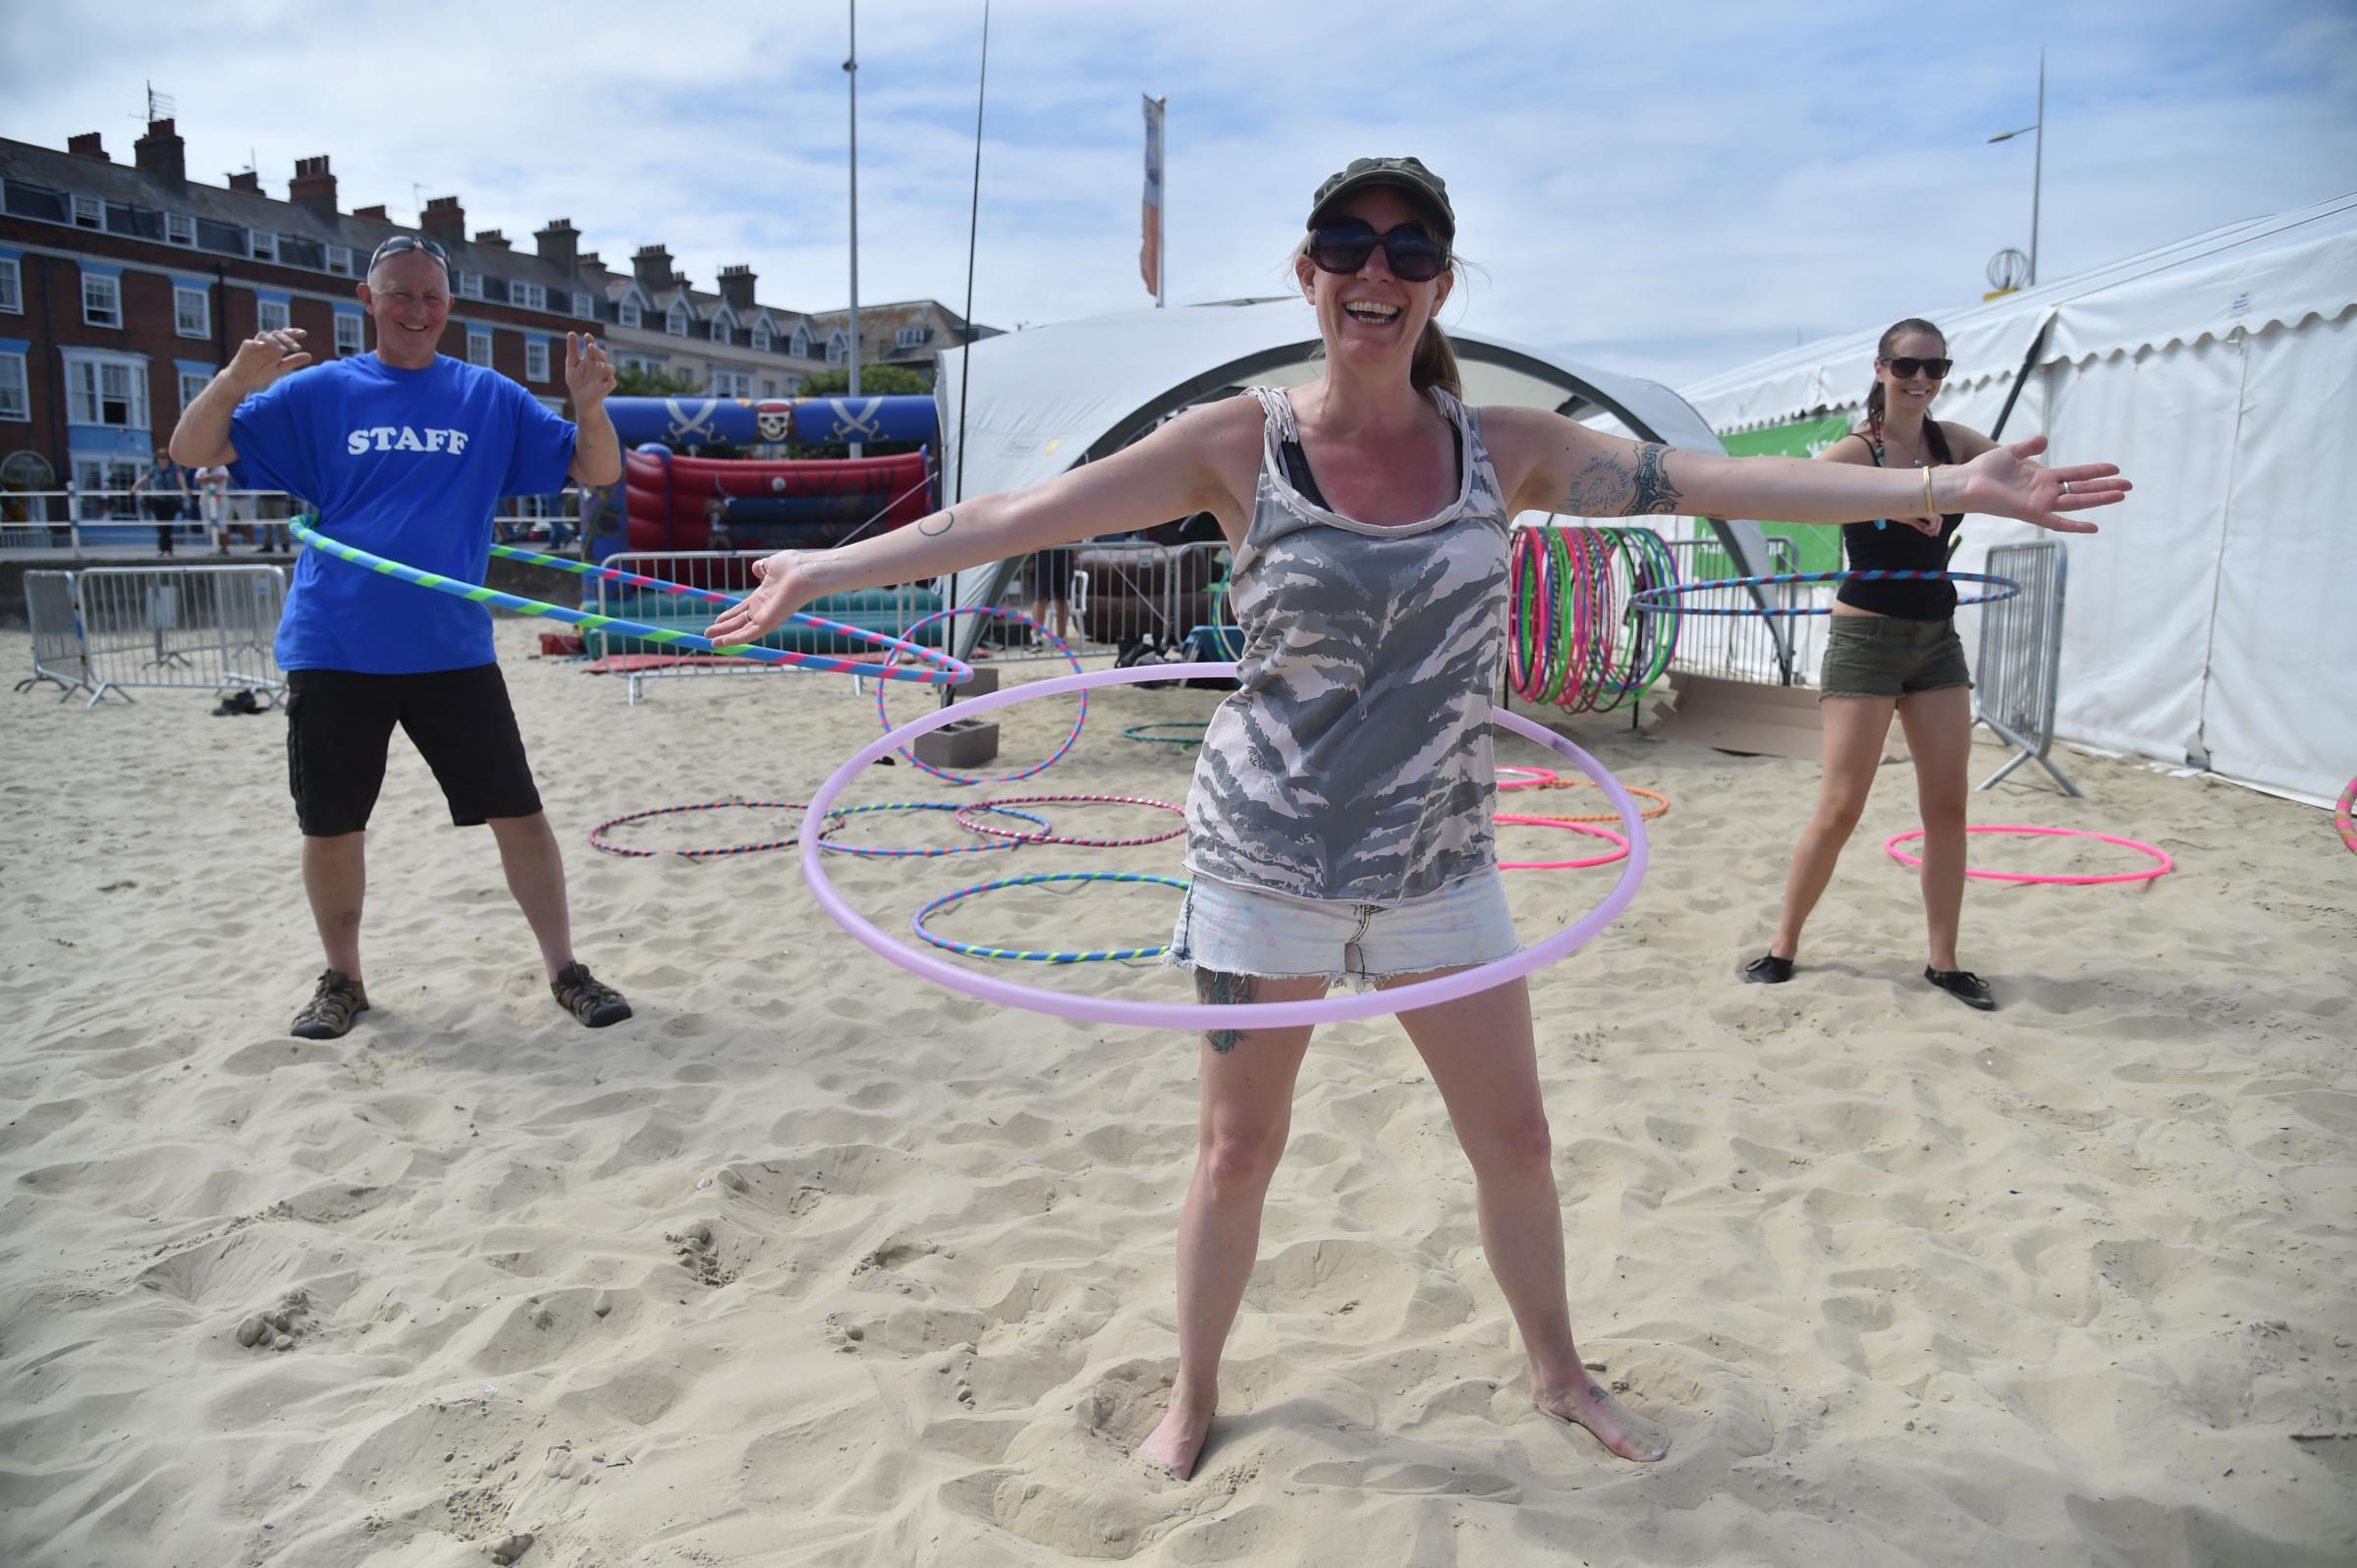 Hula hoop your way to a healthier lifestyle and Have a Go this weekend